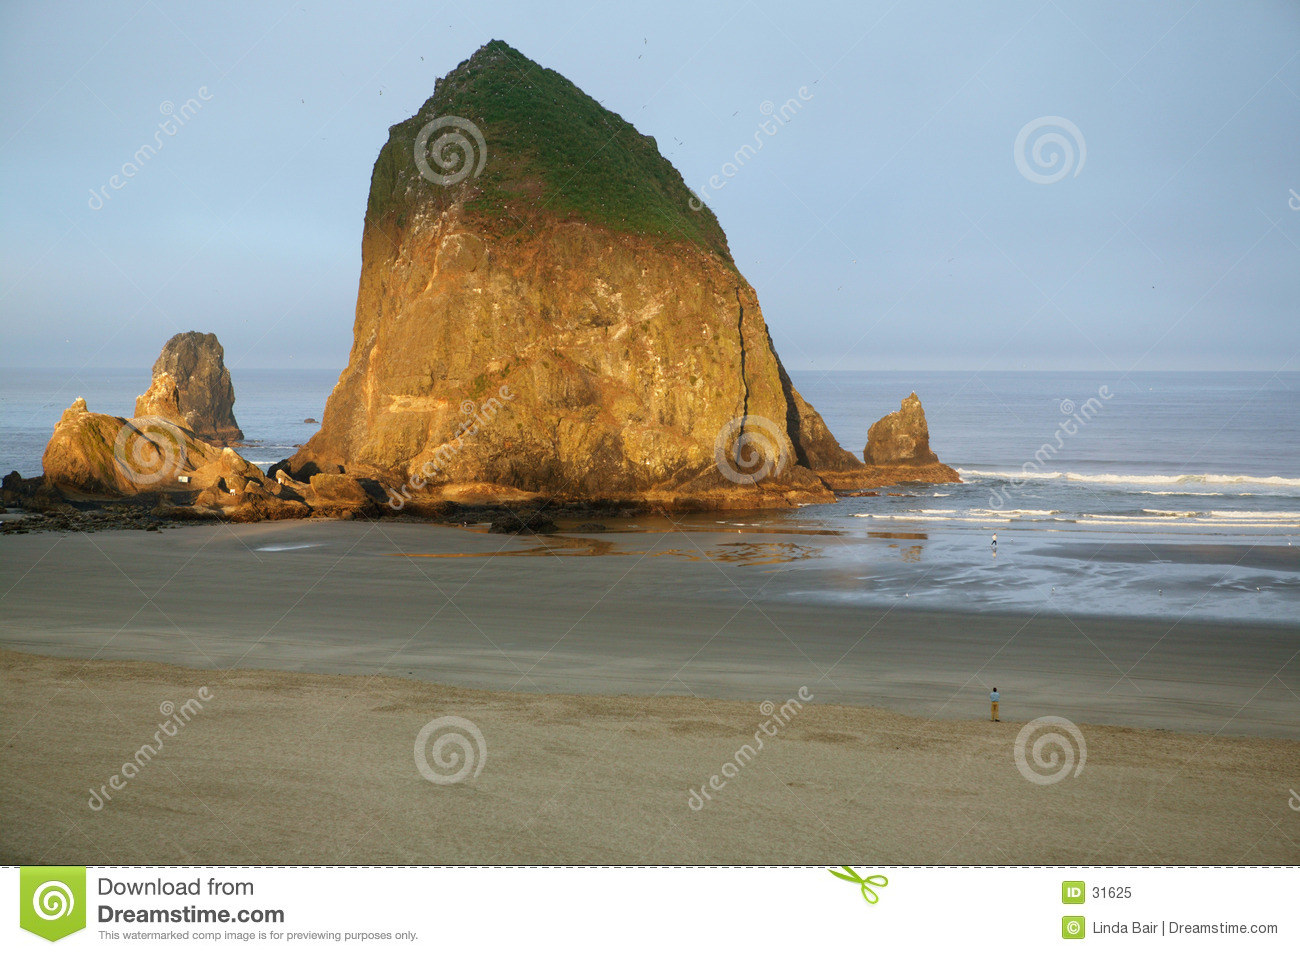 Praia do canhão, rocha do monte de feno, Oregon